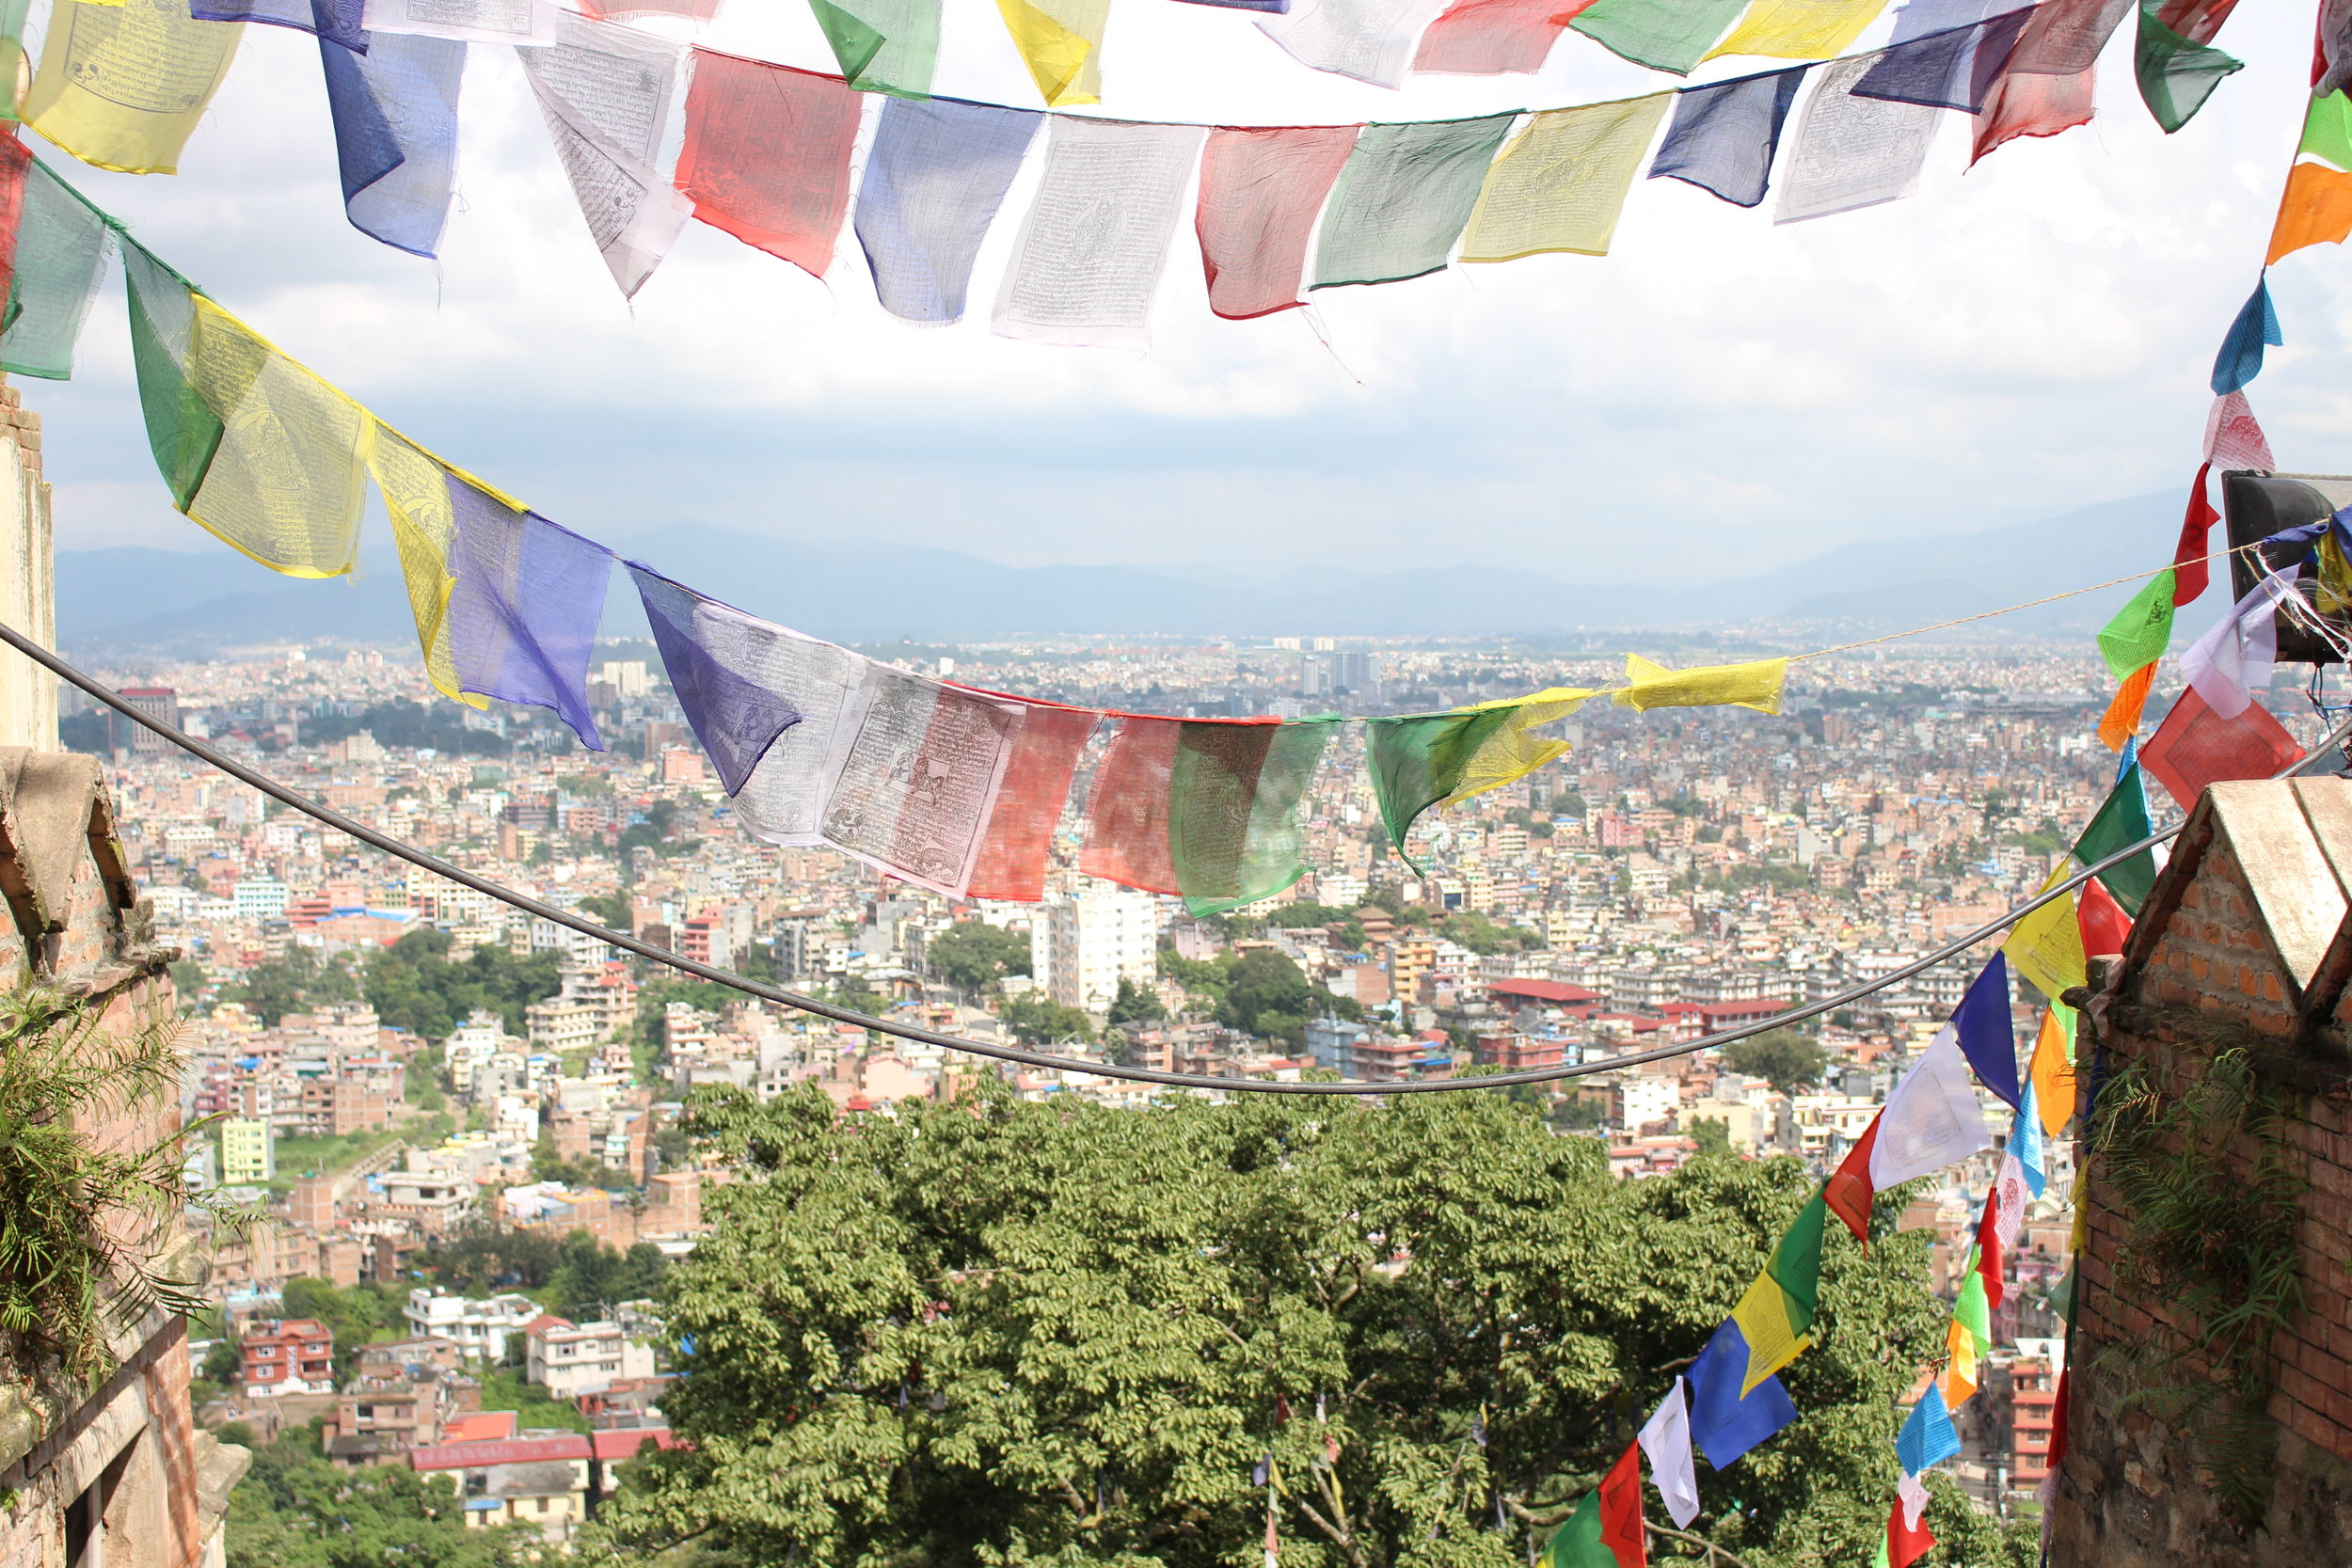 The view of Kathmandu from The Monkey Temple